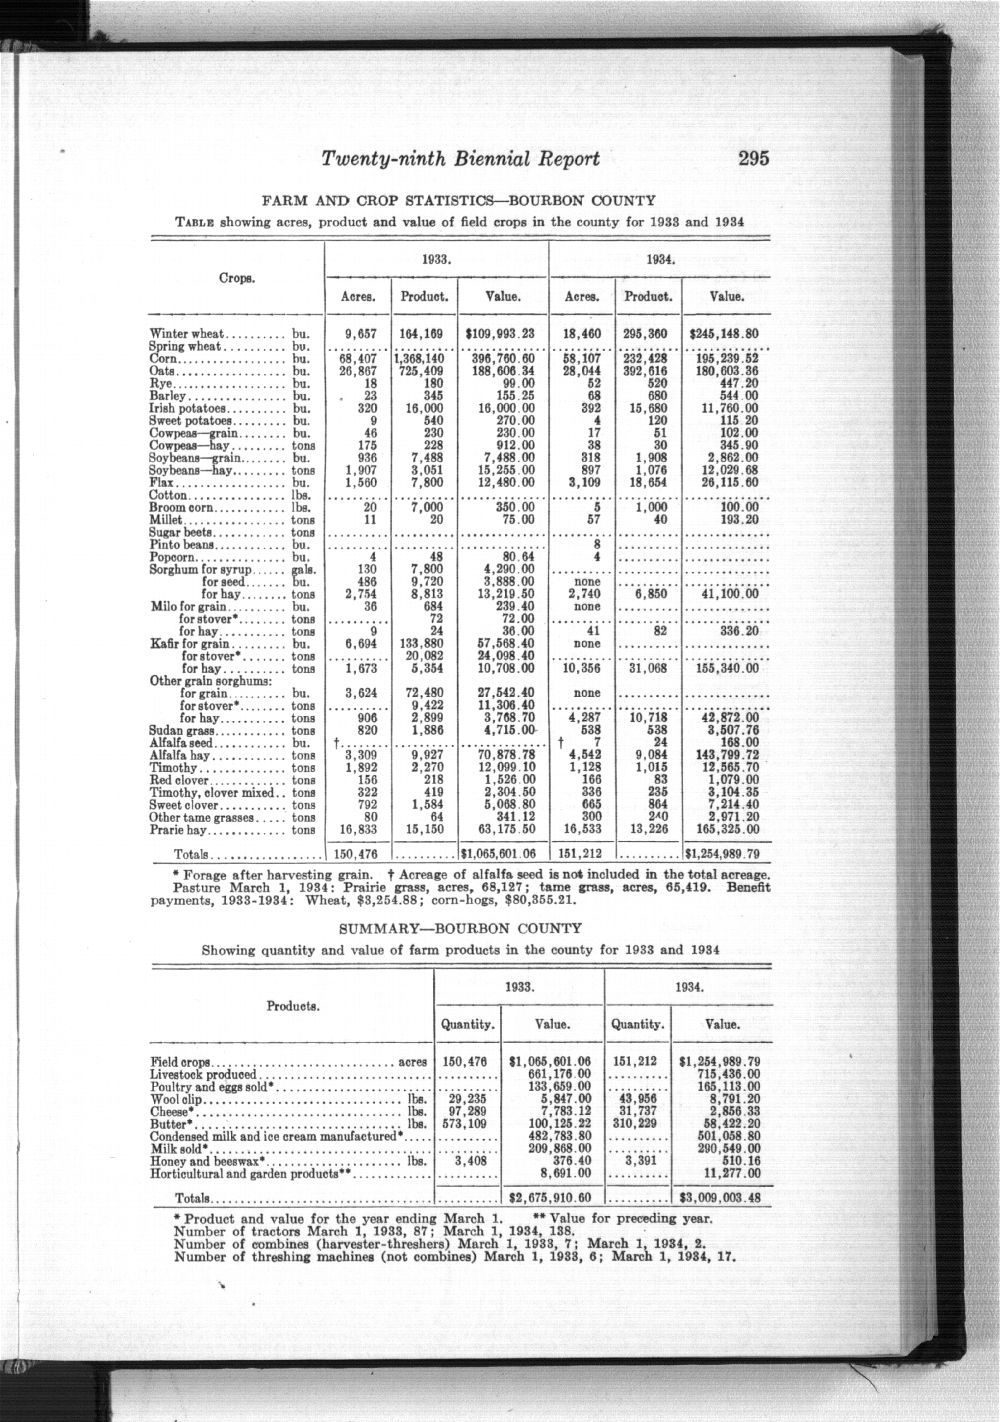 Twenty-ninth Biennial Report, Statistics by county showing population, acreage, production, and livestock, 1933-1934 - 295